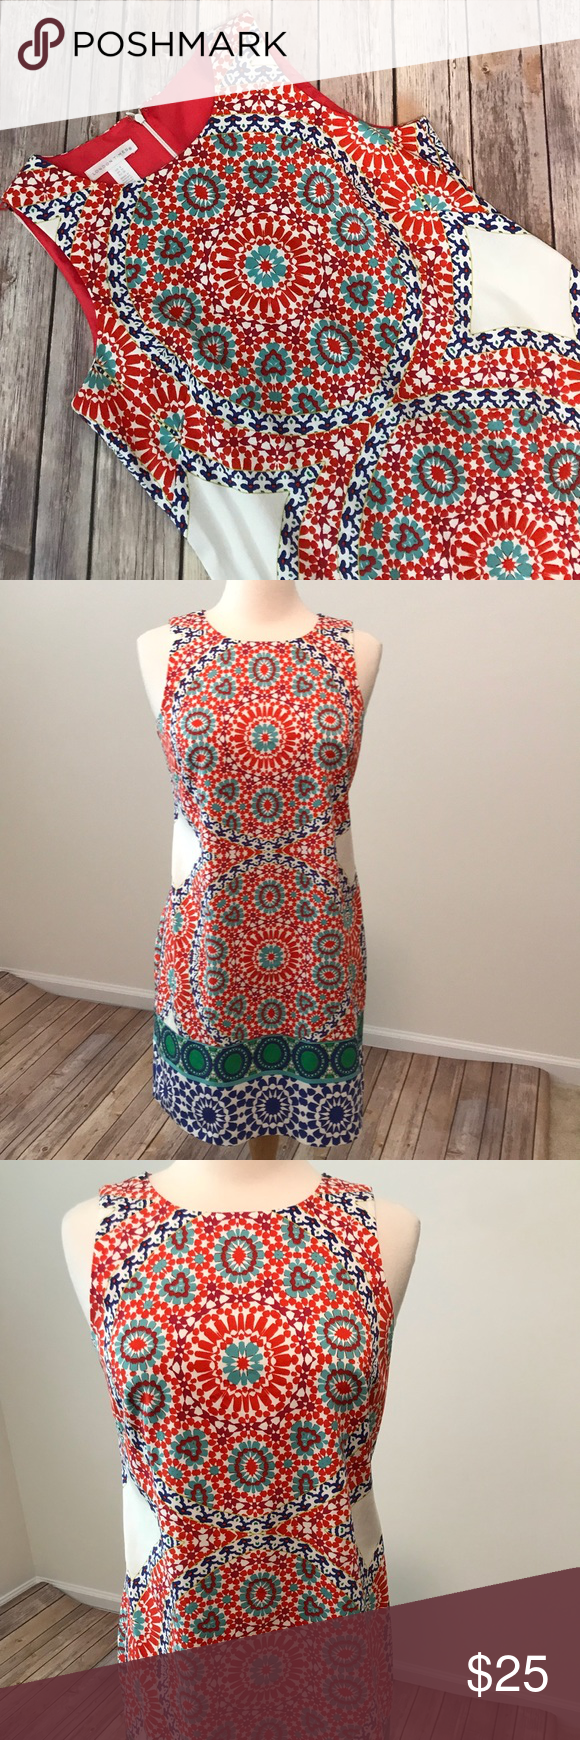 London Times Sheath Dress Colorful London Times Sheath Dress With Vibrant Colors Euc A Kaleidoscope Like P Clothes Design Colorful Dresses London Times Dress